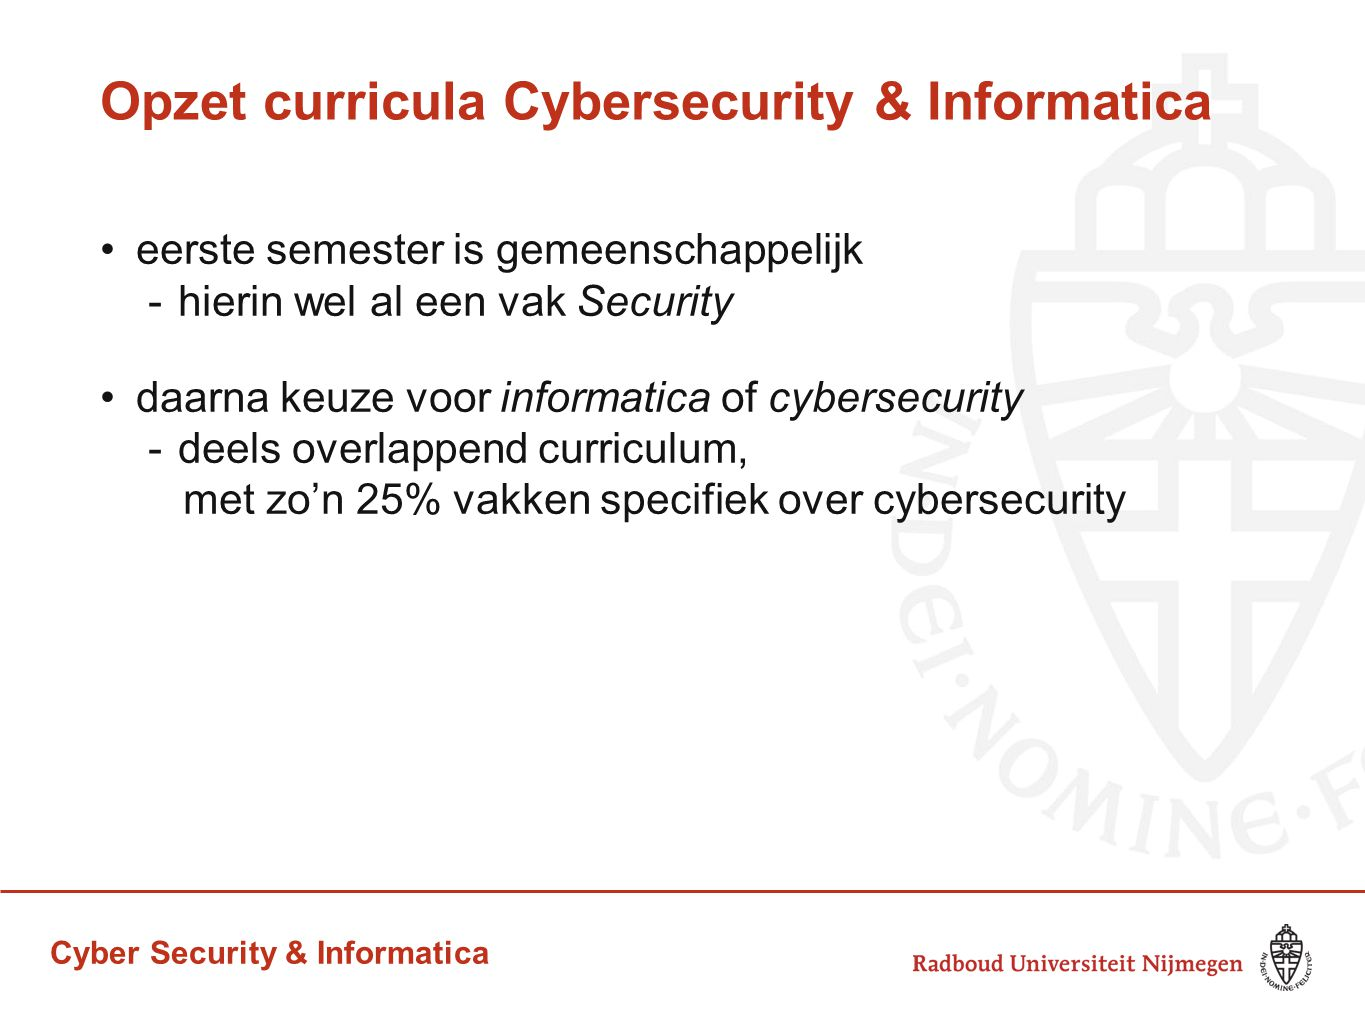 Opzet curricula Cybersecurity & Informatica